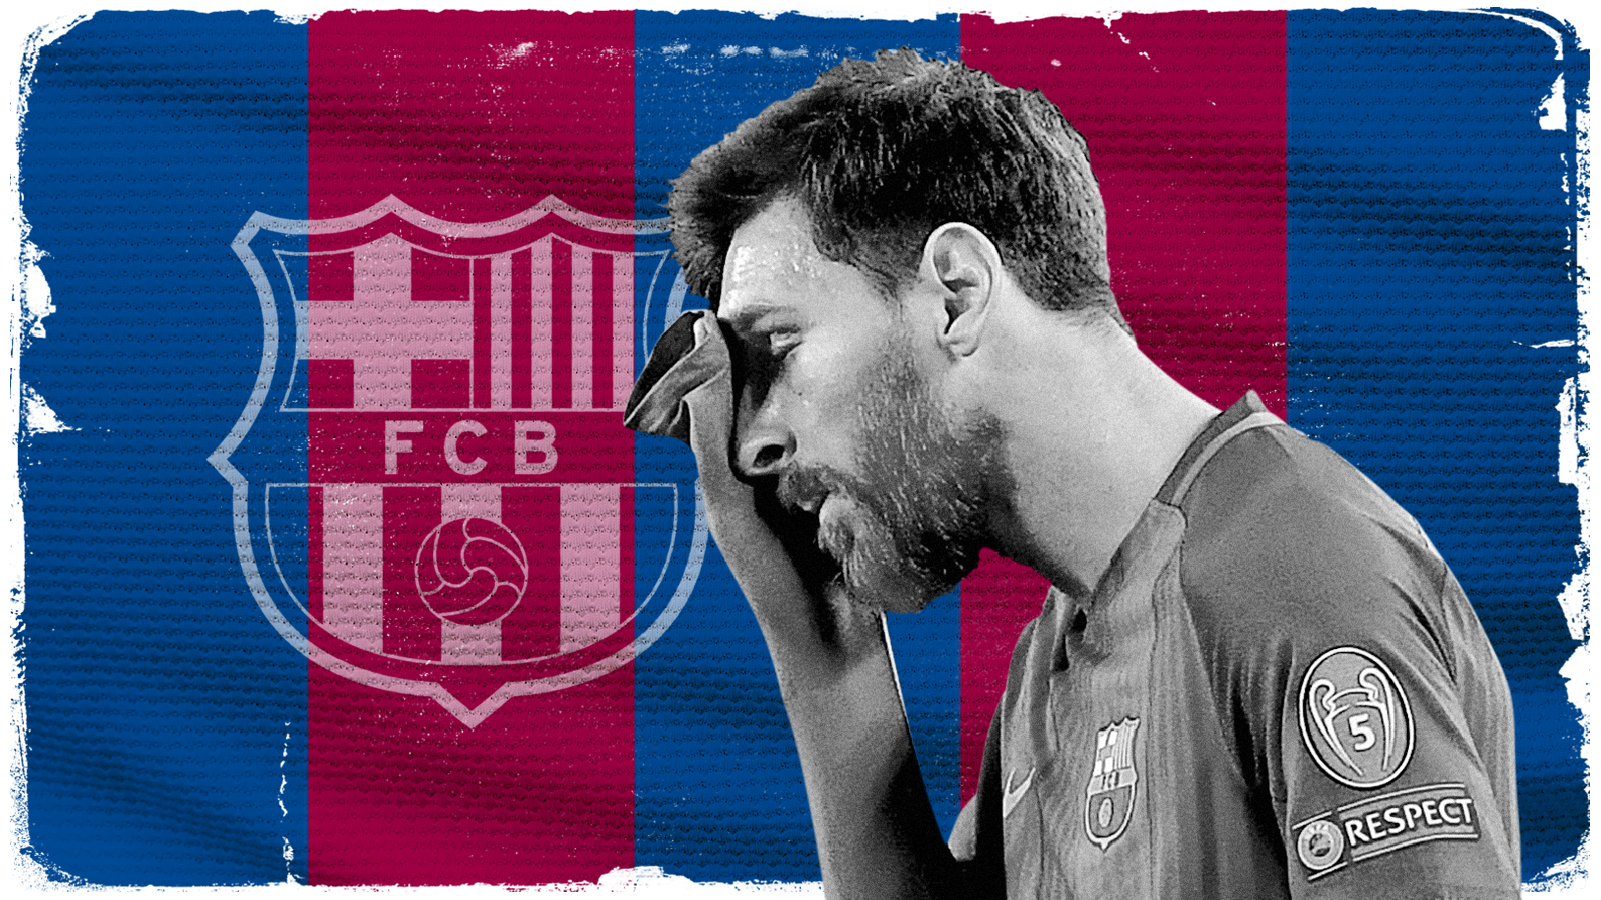 'This is war!' How the relationship between Lionel Messi and Barcelona turned sour